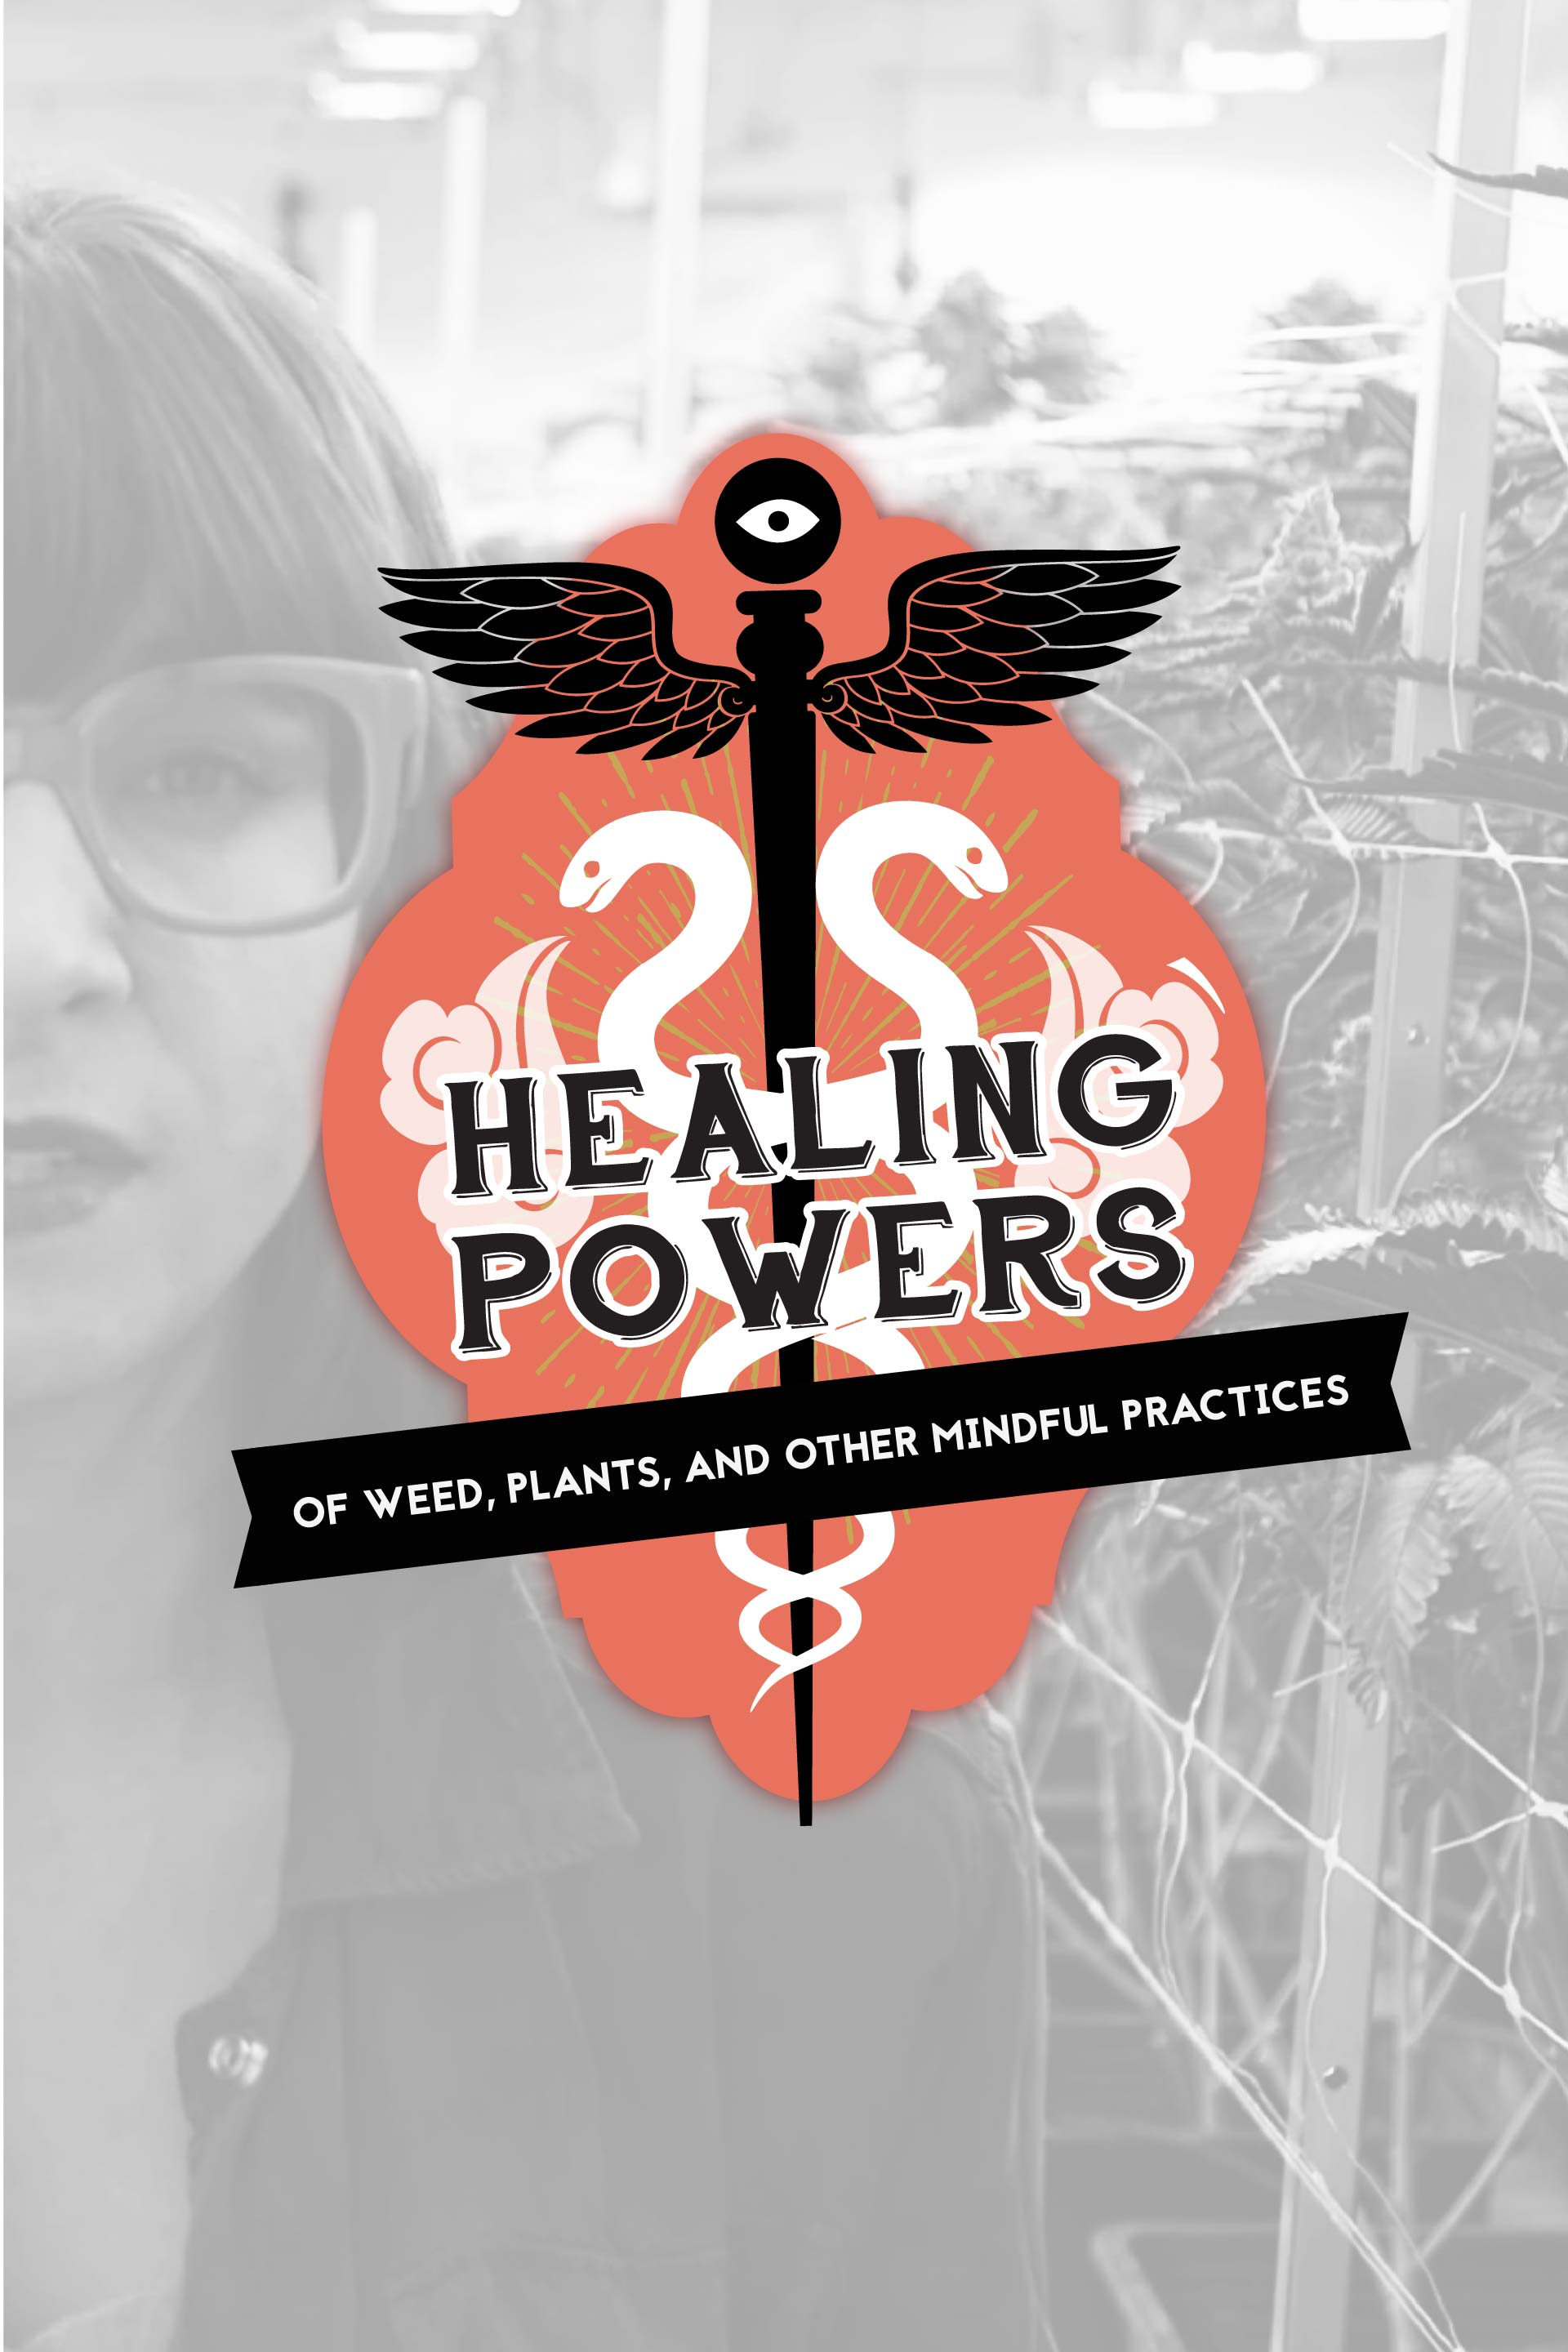 """Explore Psychedelics, Cannabis, and the World of Plant Medicine in Our New Series """"Healing Powers"""" 